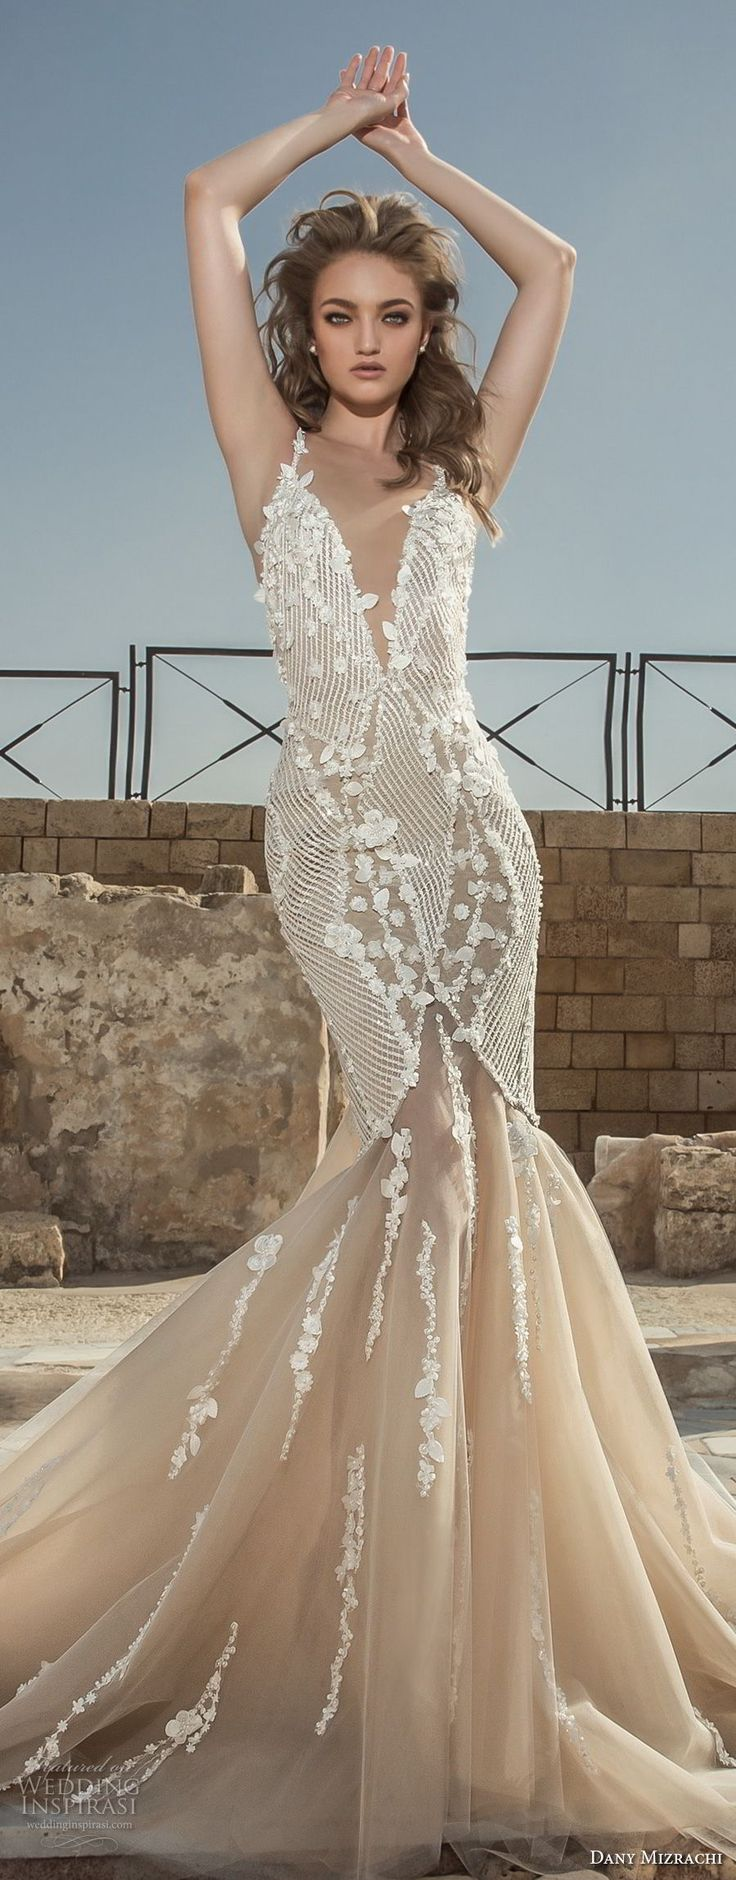 Elegant Cheap Bridal Shop Brilliant Best Selling New Style Champagne Empire Waist Corset Beaded Applique Colored Wedding Dress